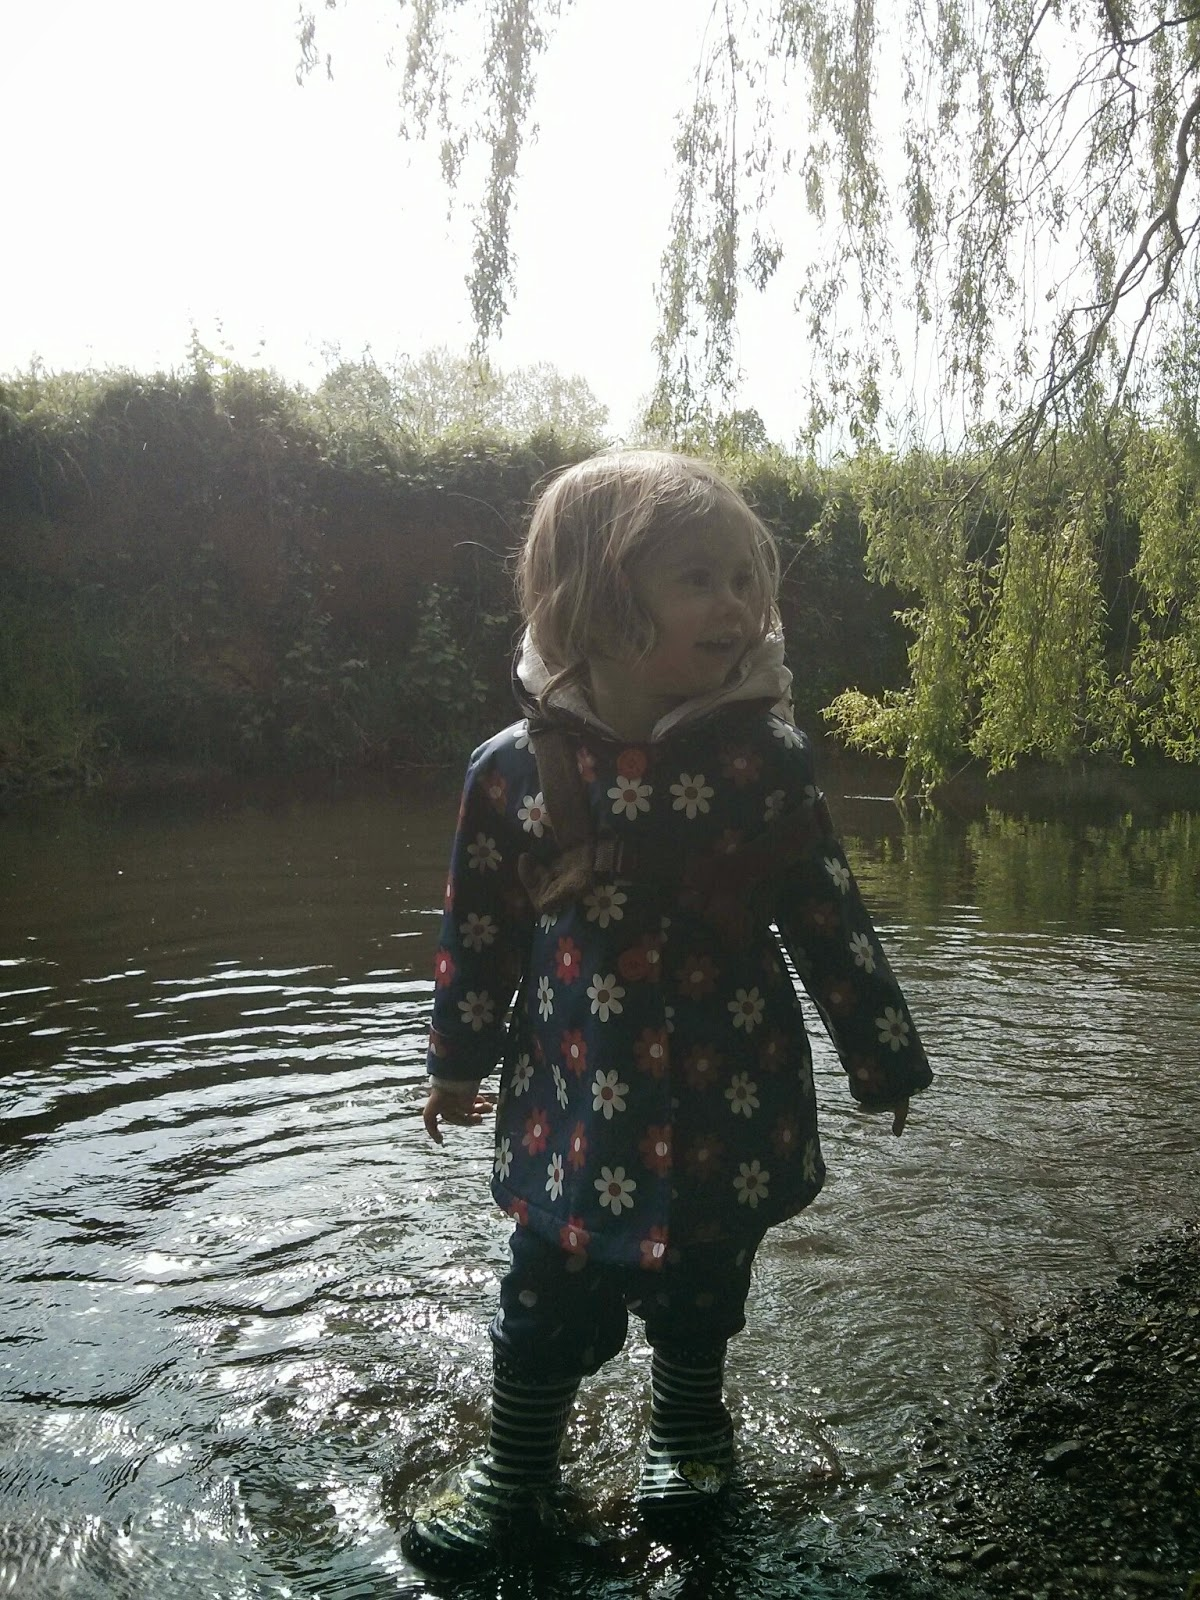 standing in the stream